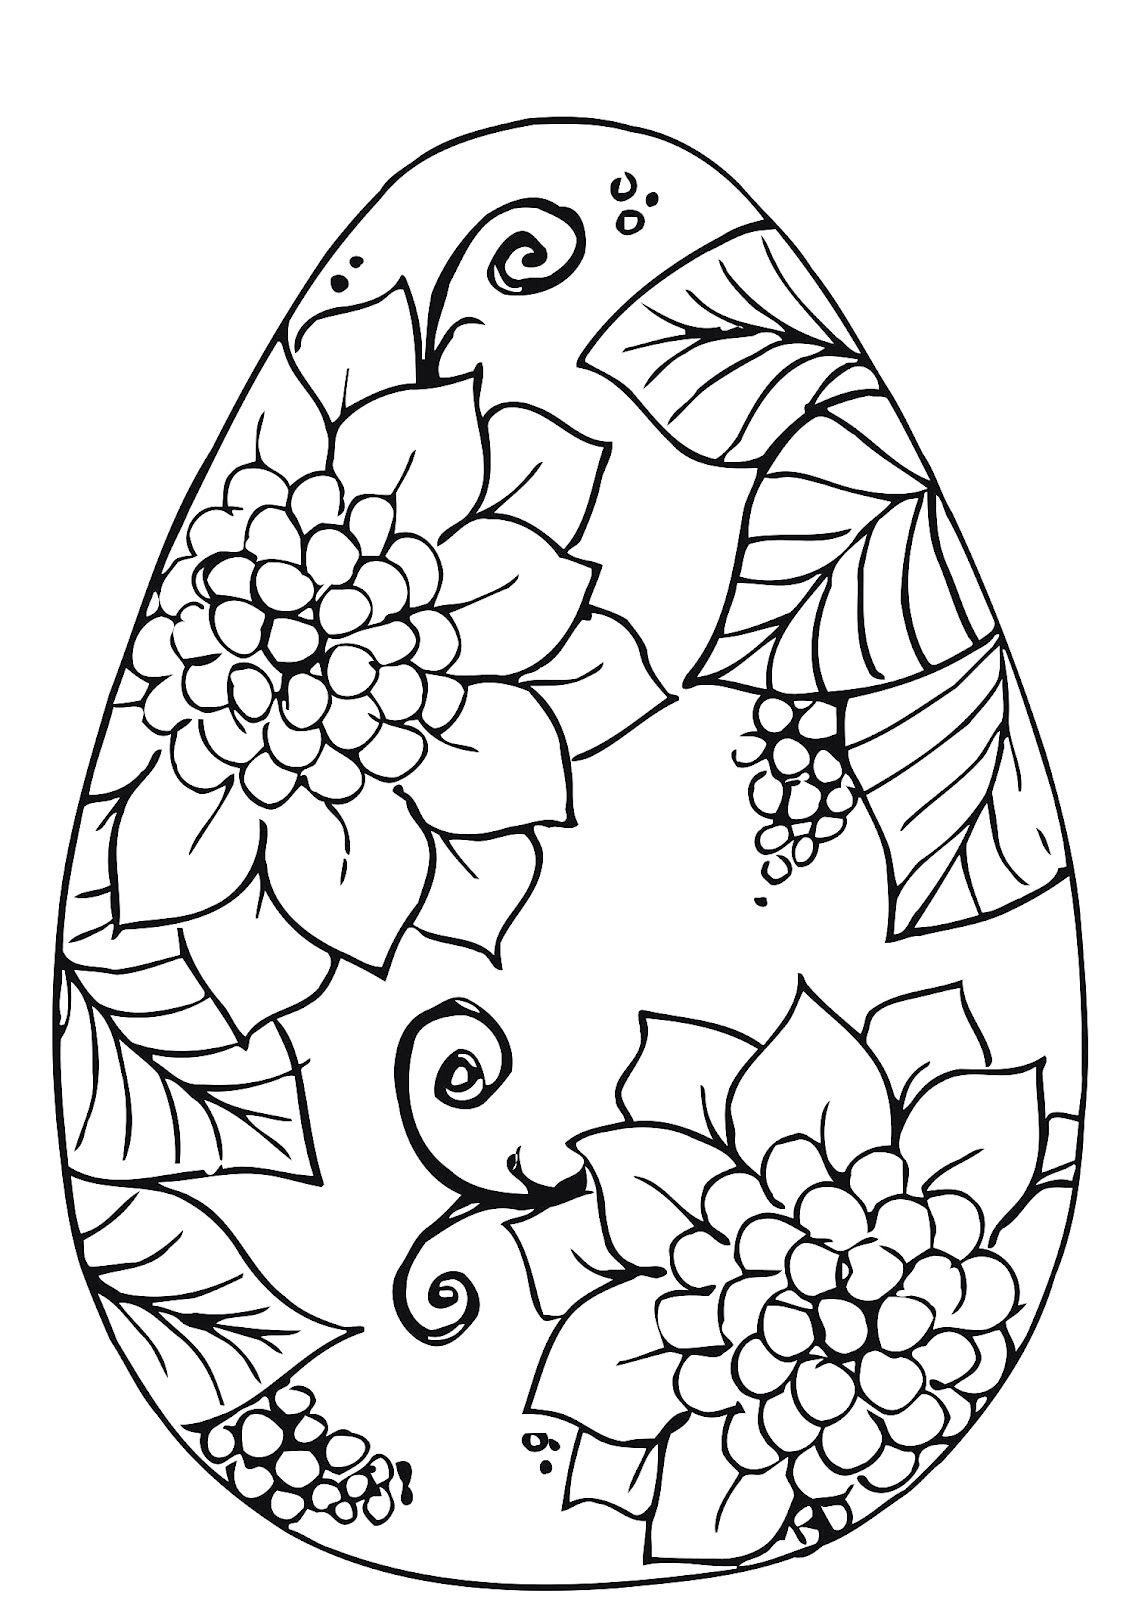 Easter Egg Flower Patterns